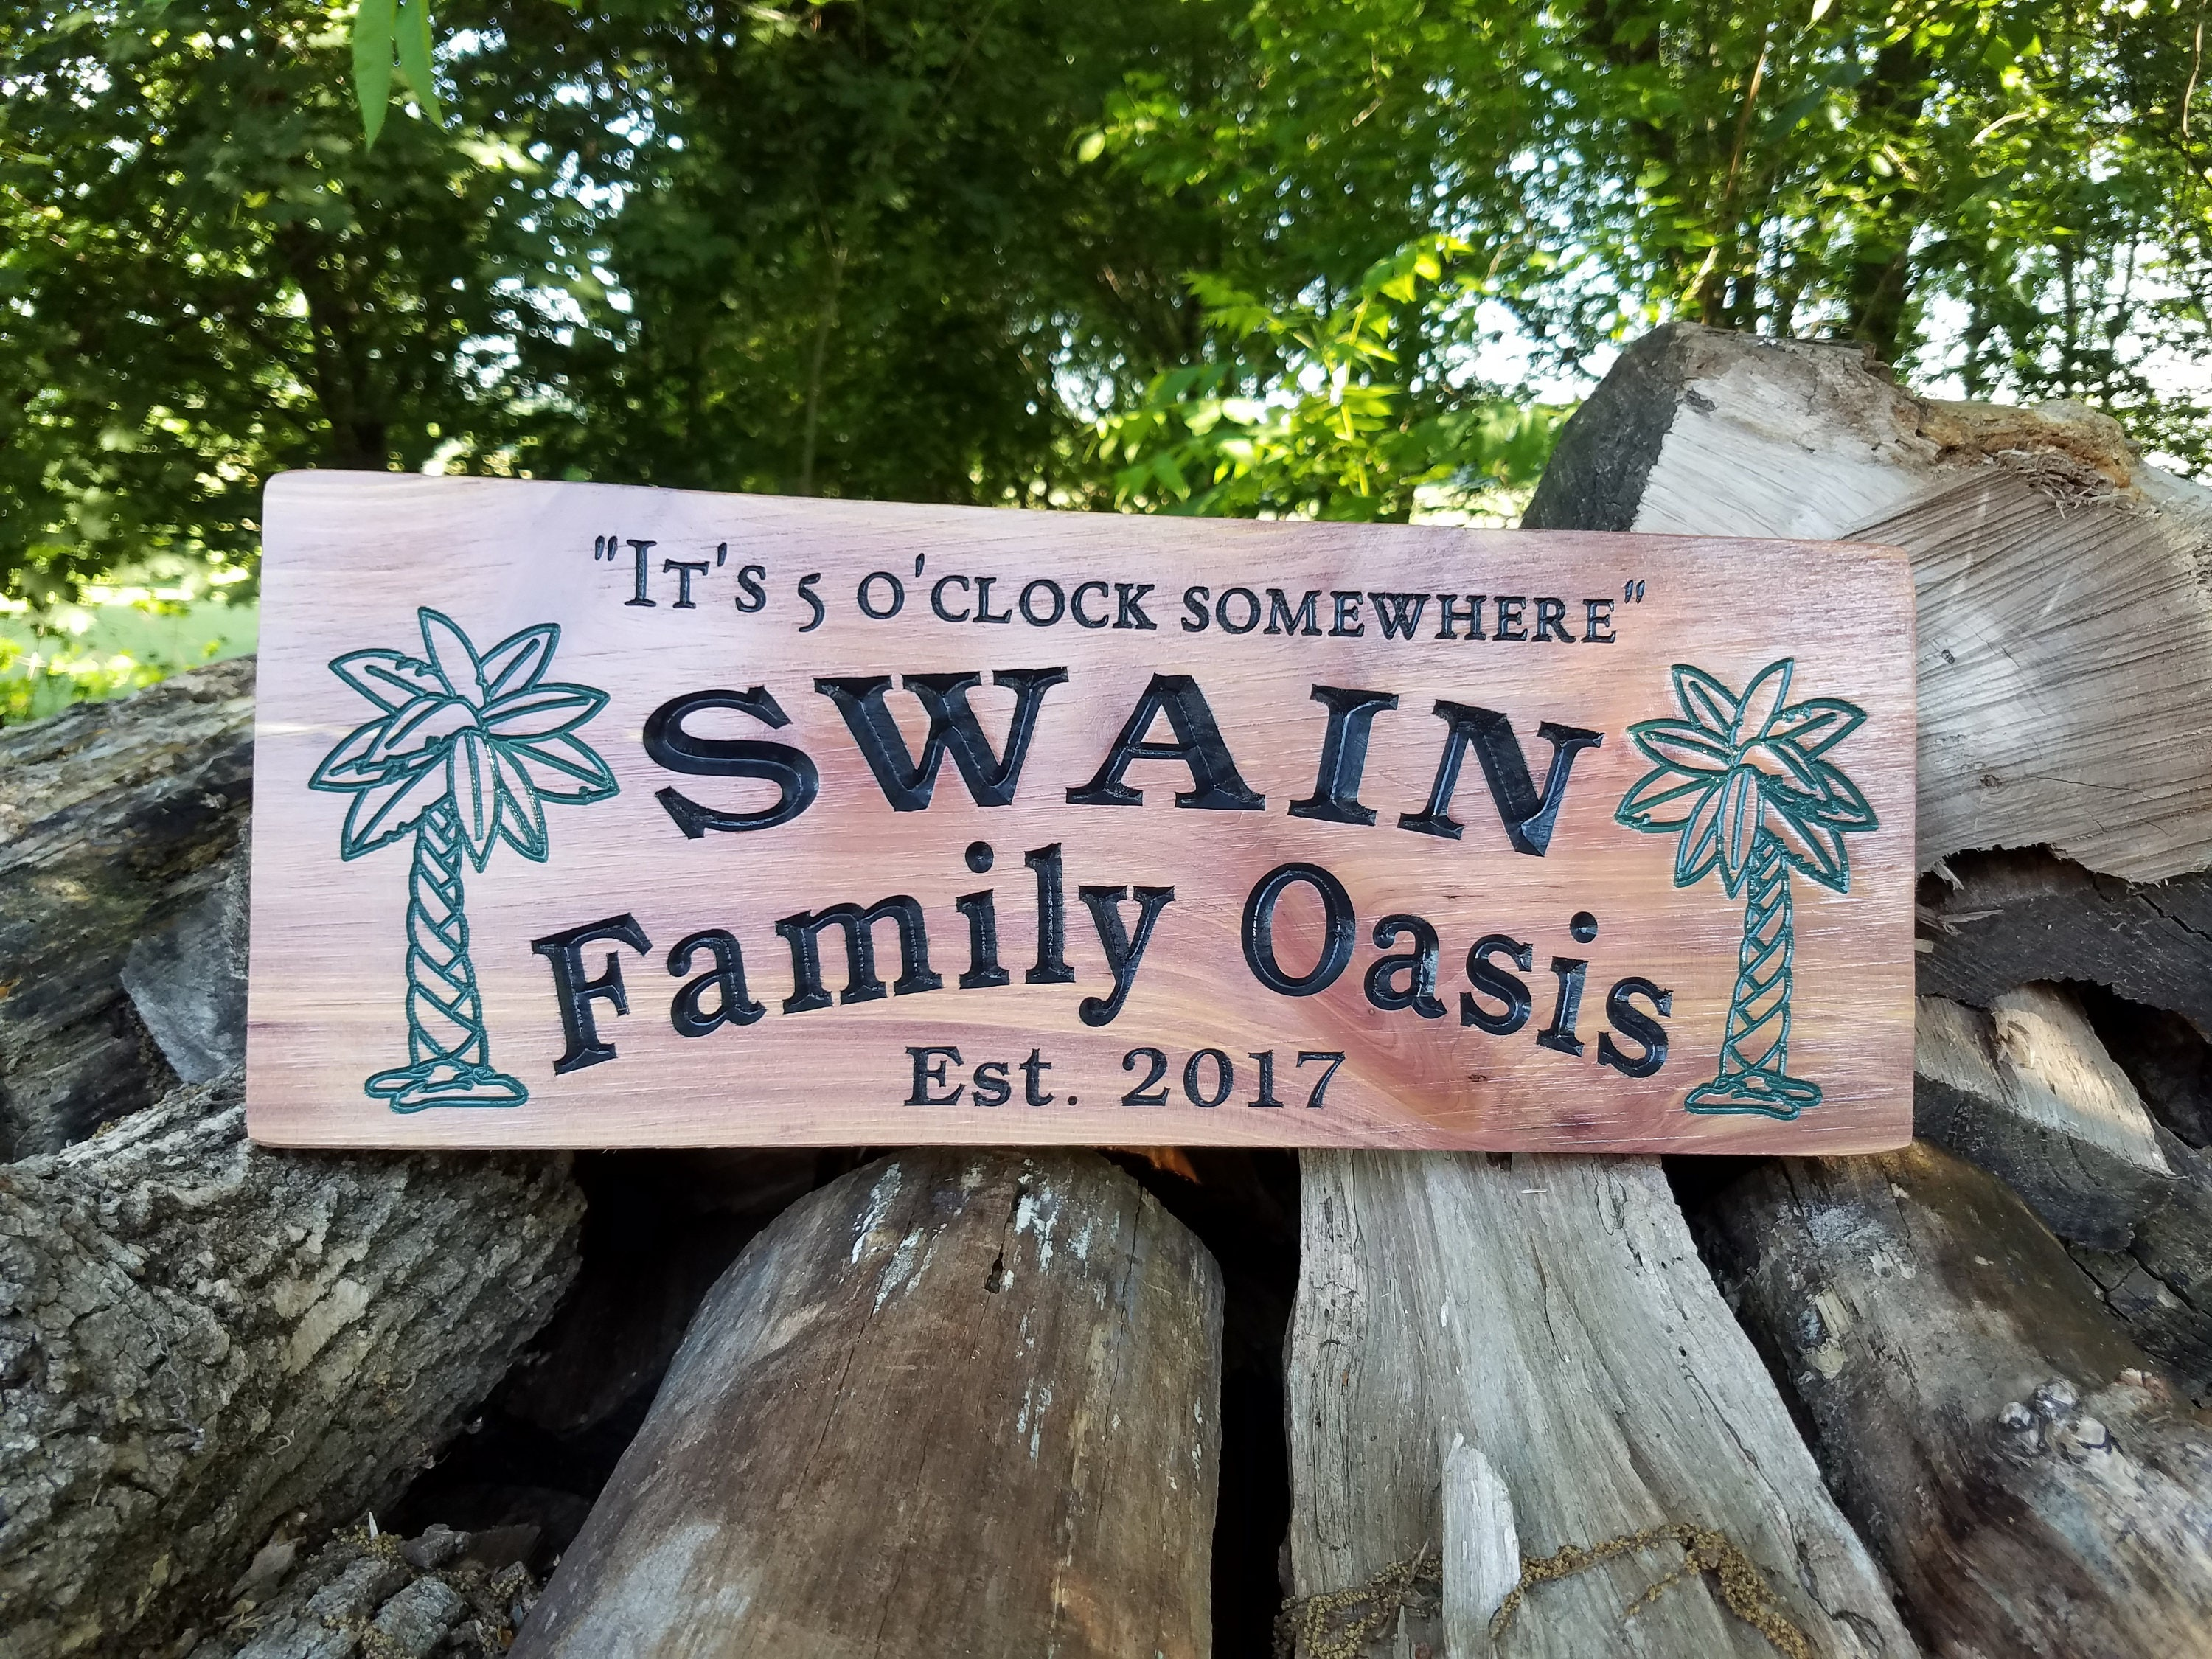 Fresh Family Oasis Swimming Pool Last Name Personalized Wooden Carved  BM32